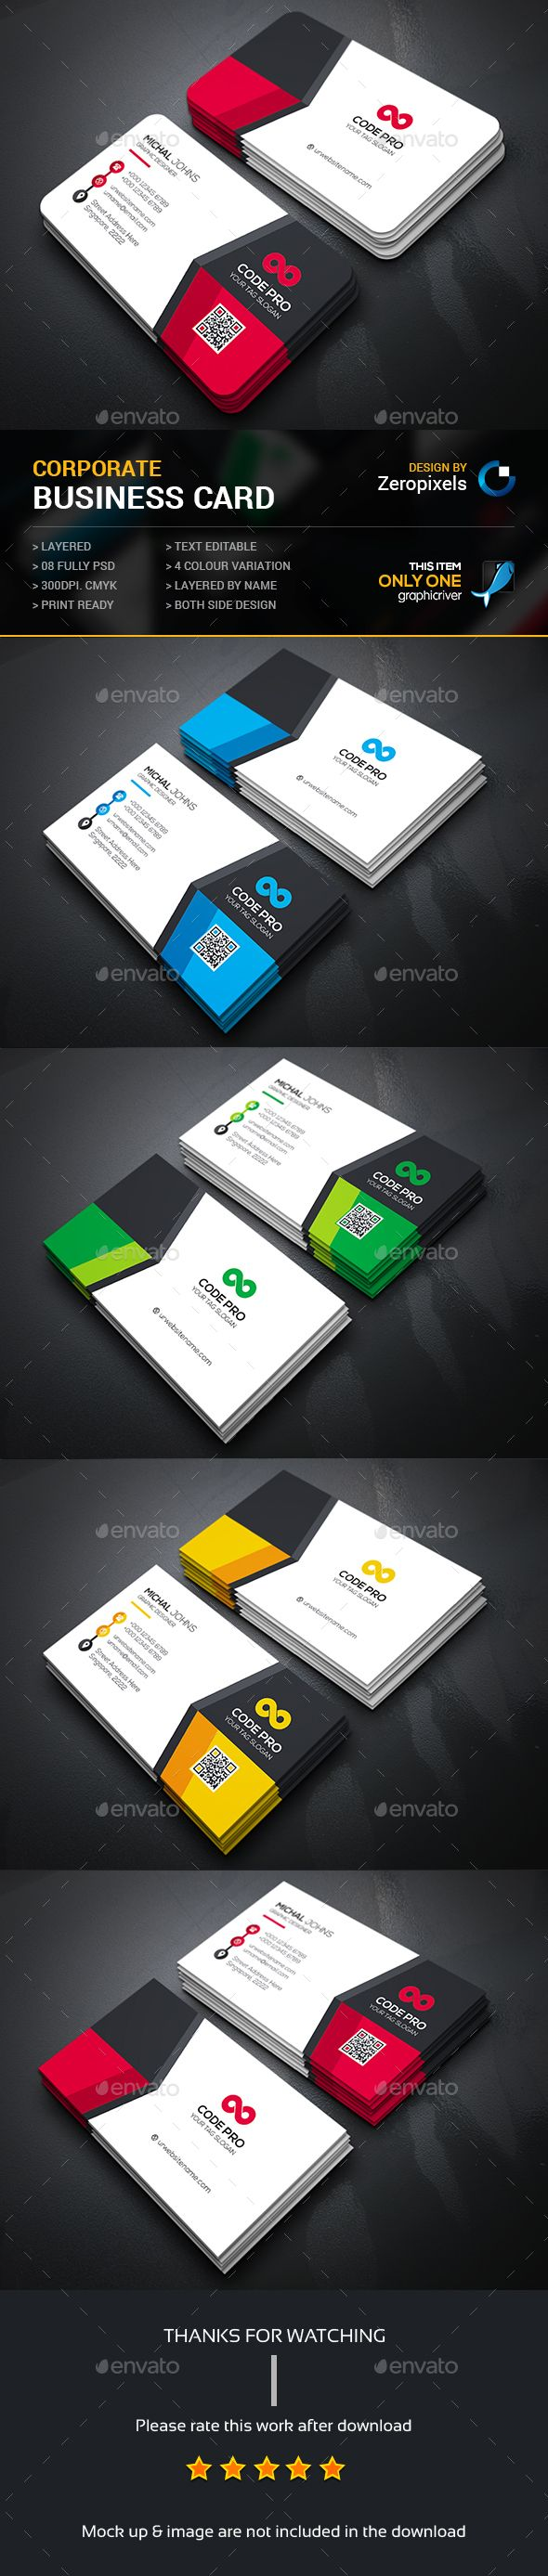 Business Card Template PSD. Download here: http://graphicriver.net/item/business-card/14673637?ref=ksioks